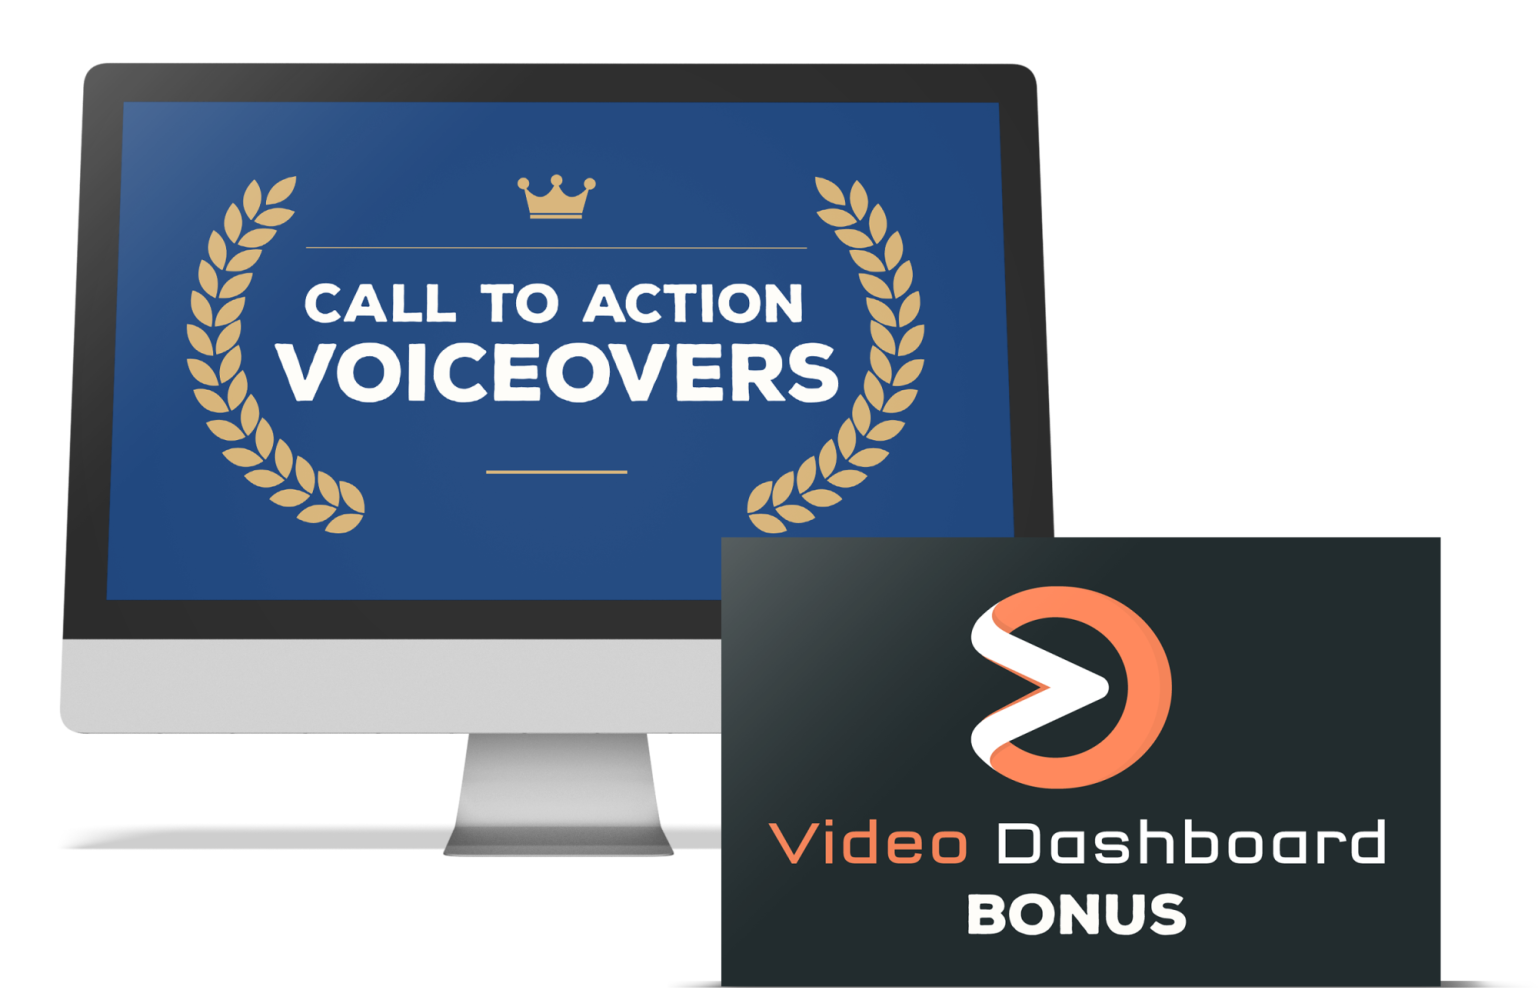 Video Dashboard Bonus